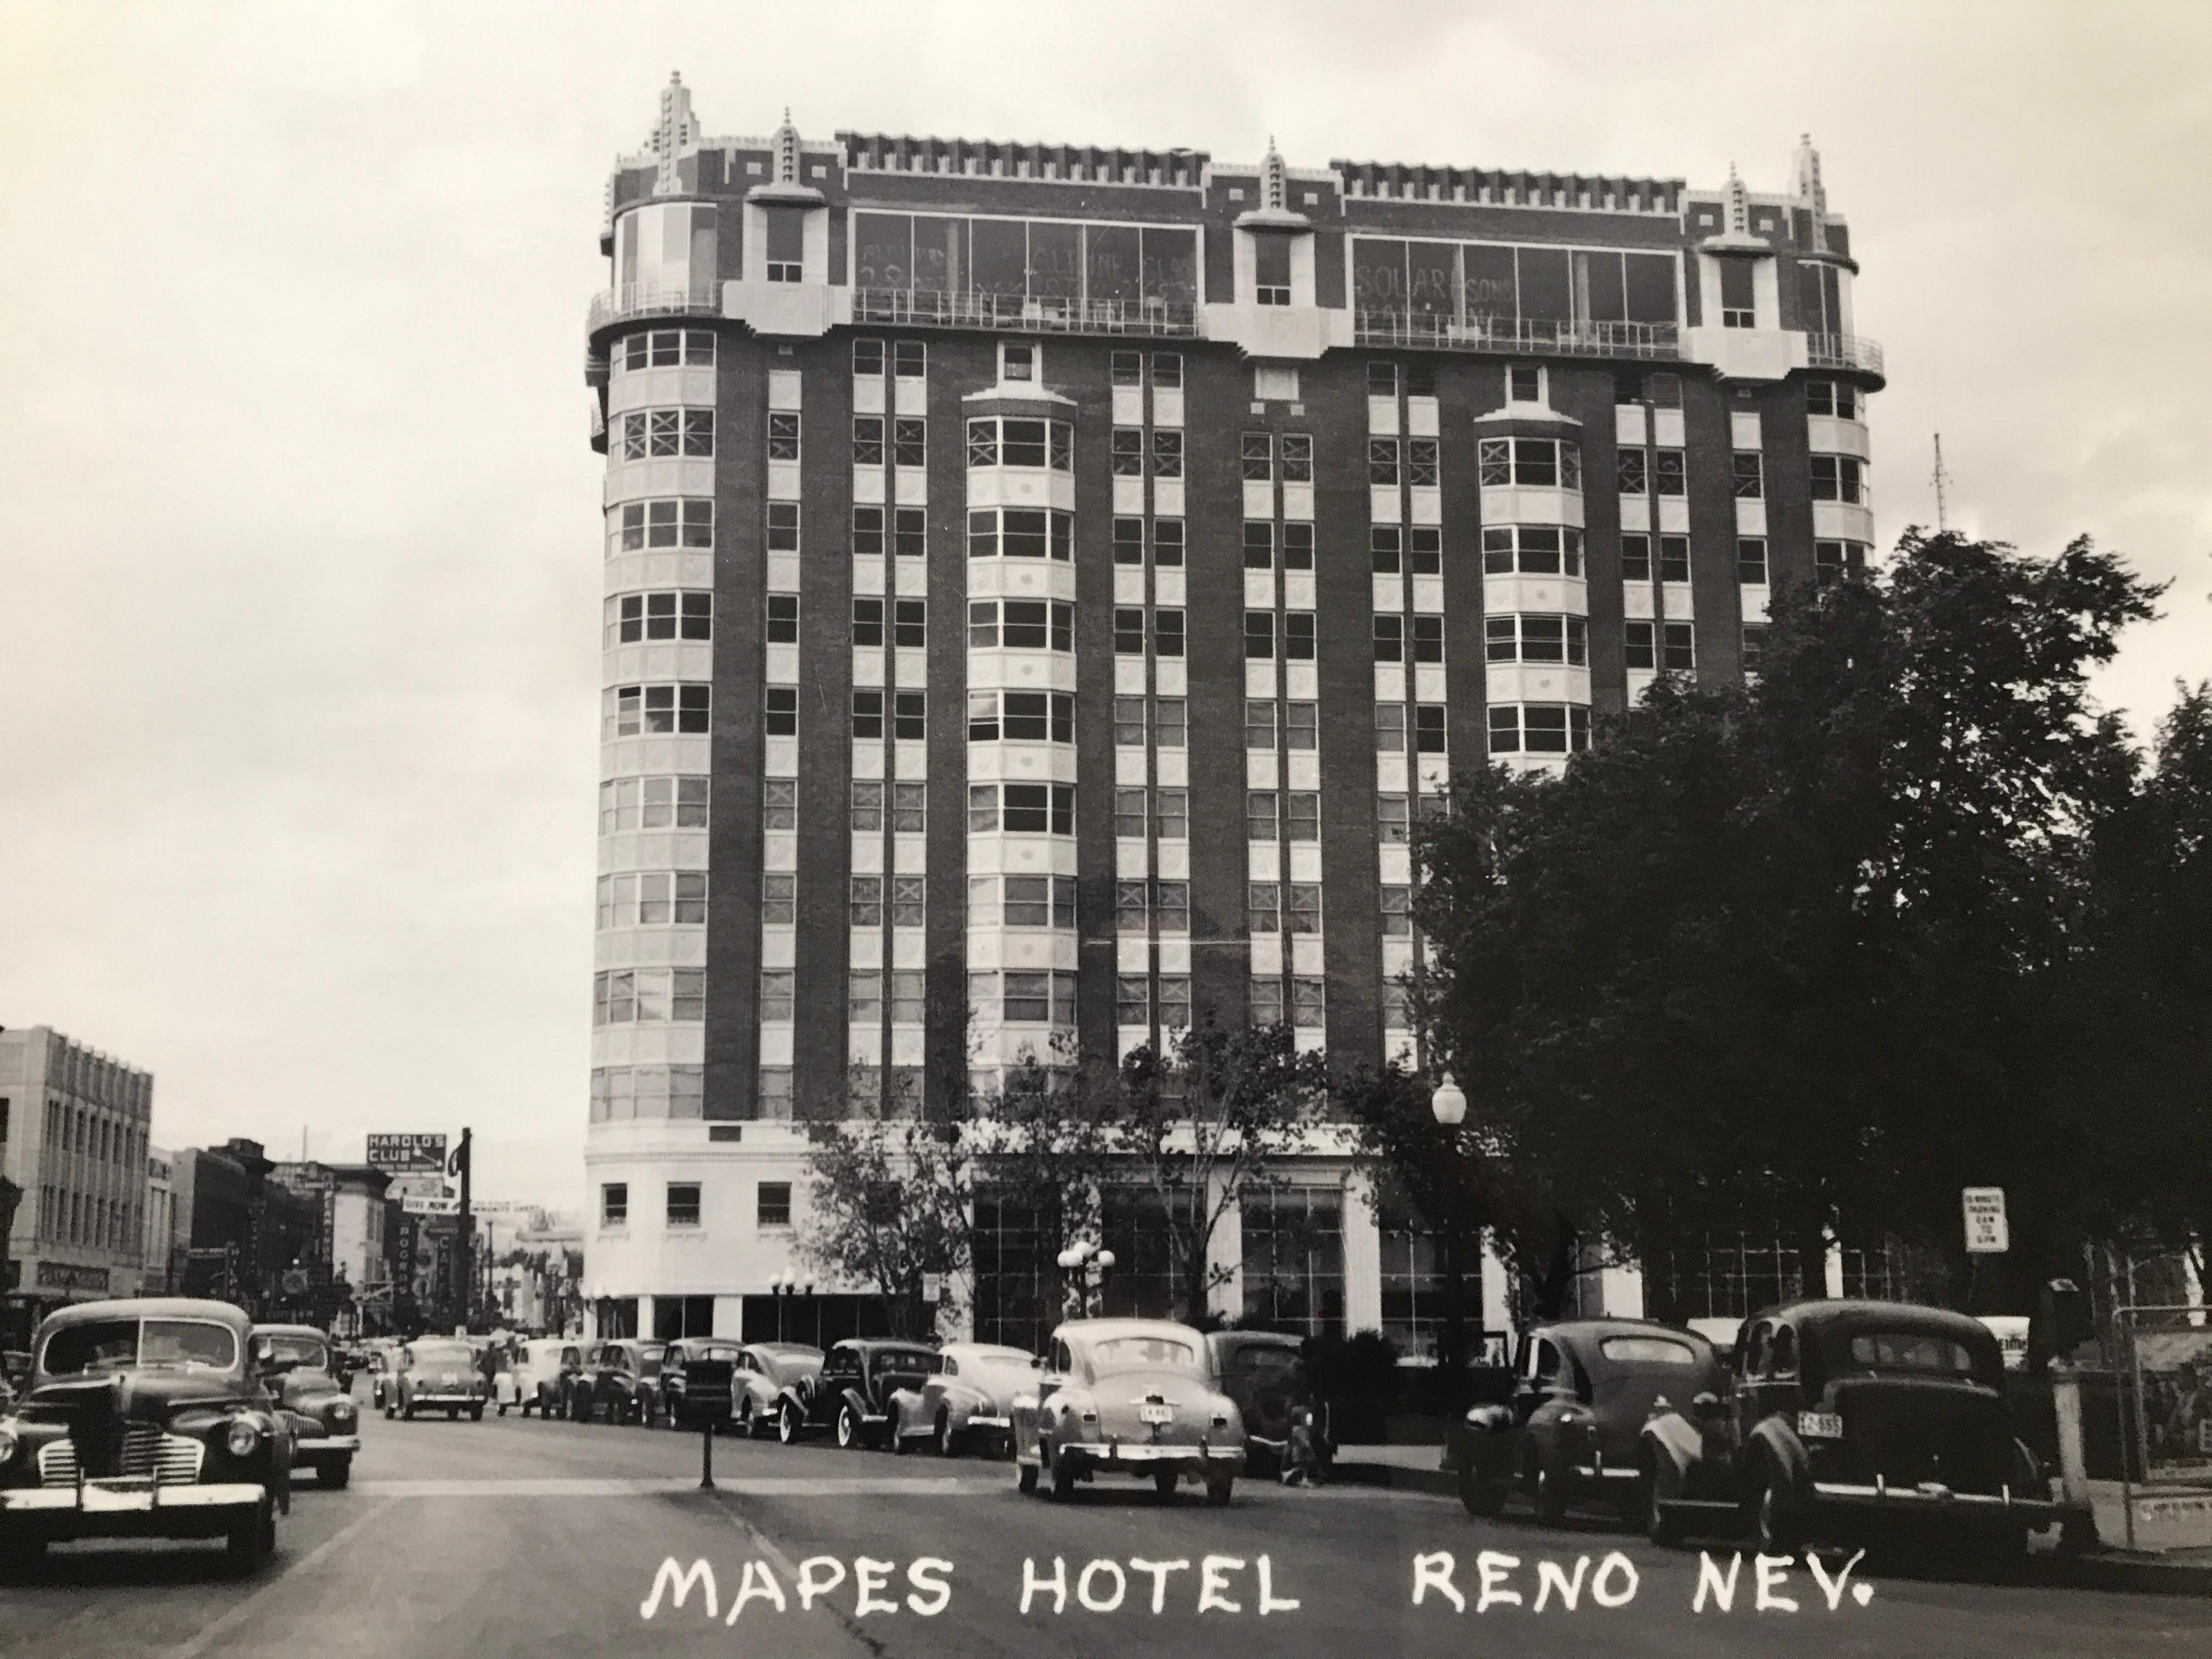 The 12-story Mapes Hotel became the tallest building in Nevada when it burst onto the Reno scene in 1947. Its prime location on the northeast corner of the Truckee River and Virginia Street had become available in 1934, when the old post office was replaced by the Art Deco-style building directly across the river. (Photo courtesy: Reno Historical)